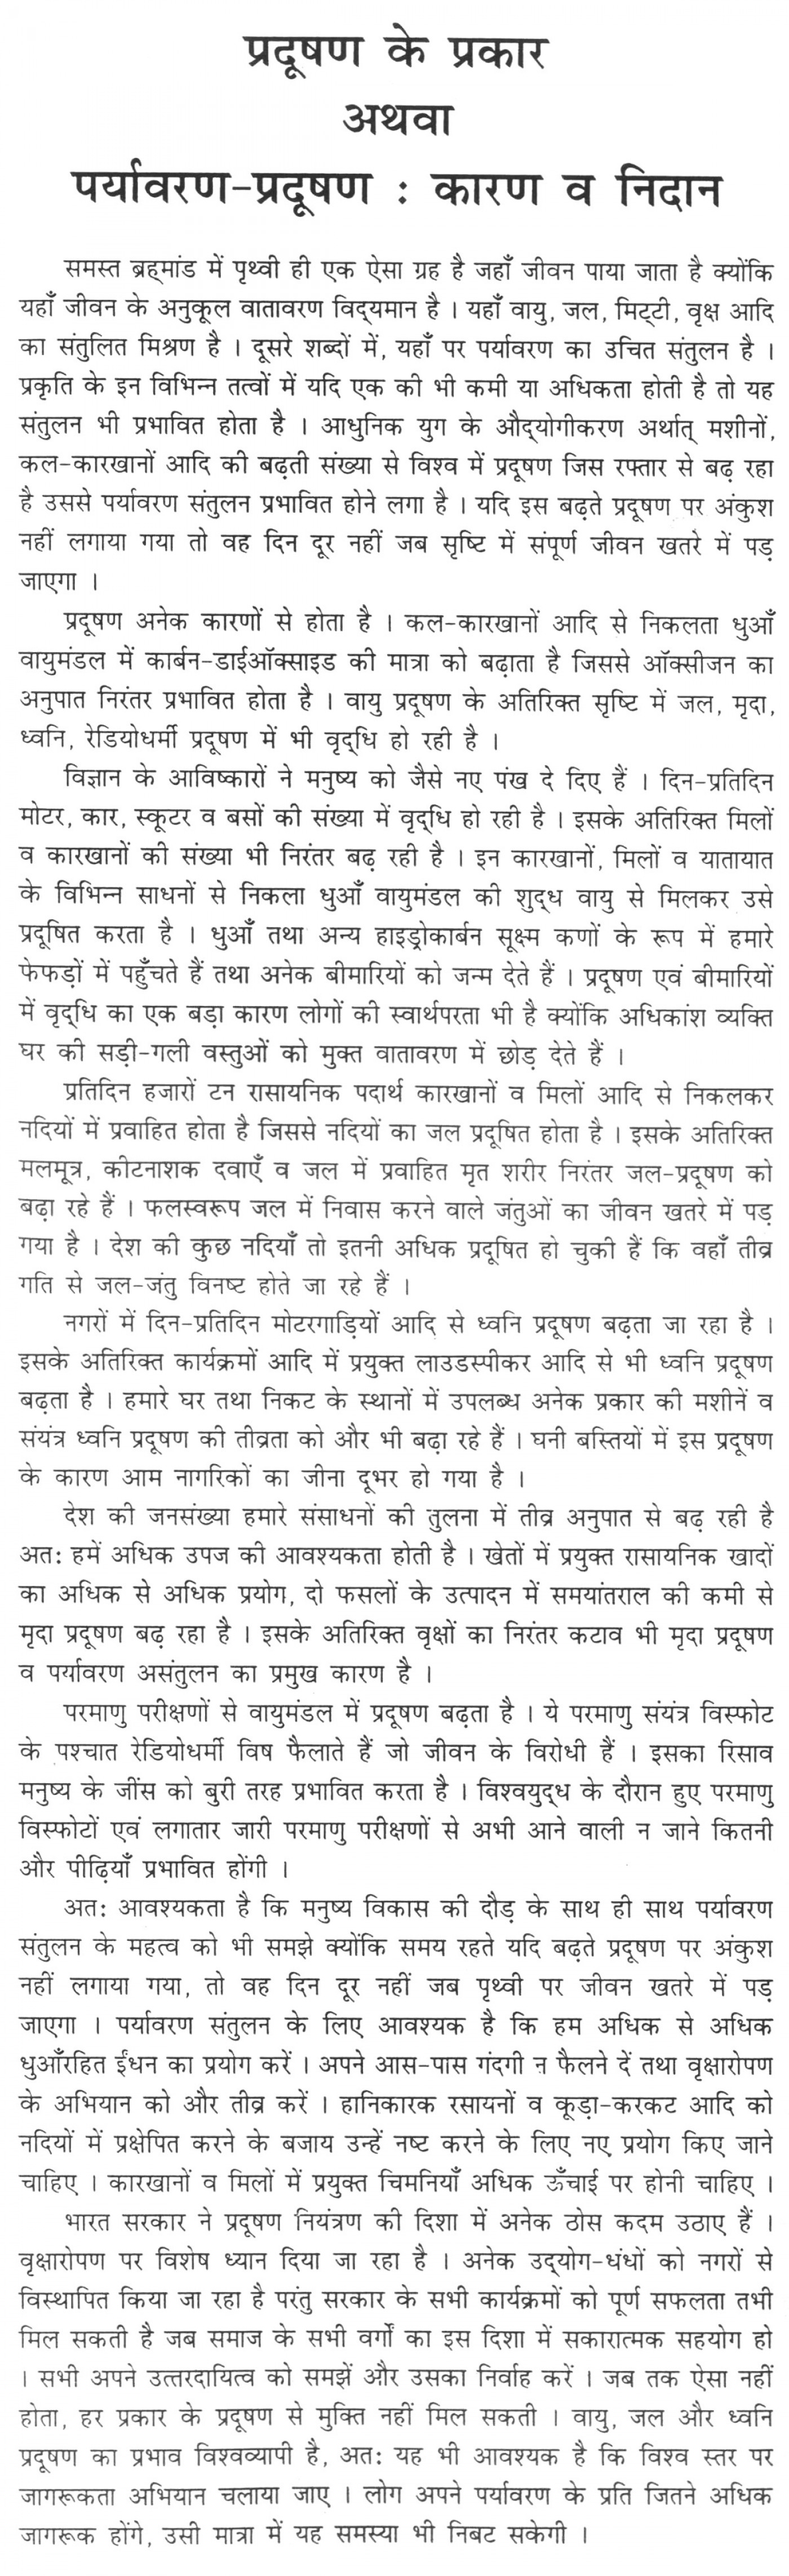 014 Good Habits Essay In Hindi Exceptional Bad Eating Habit 1400